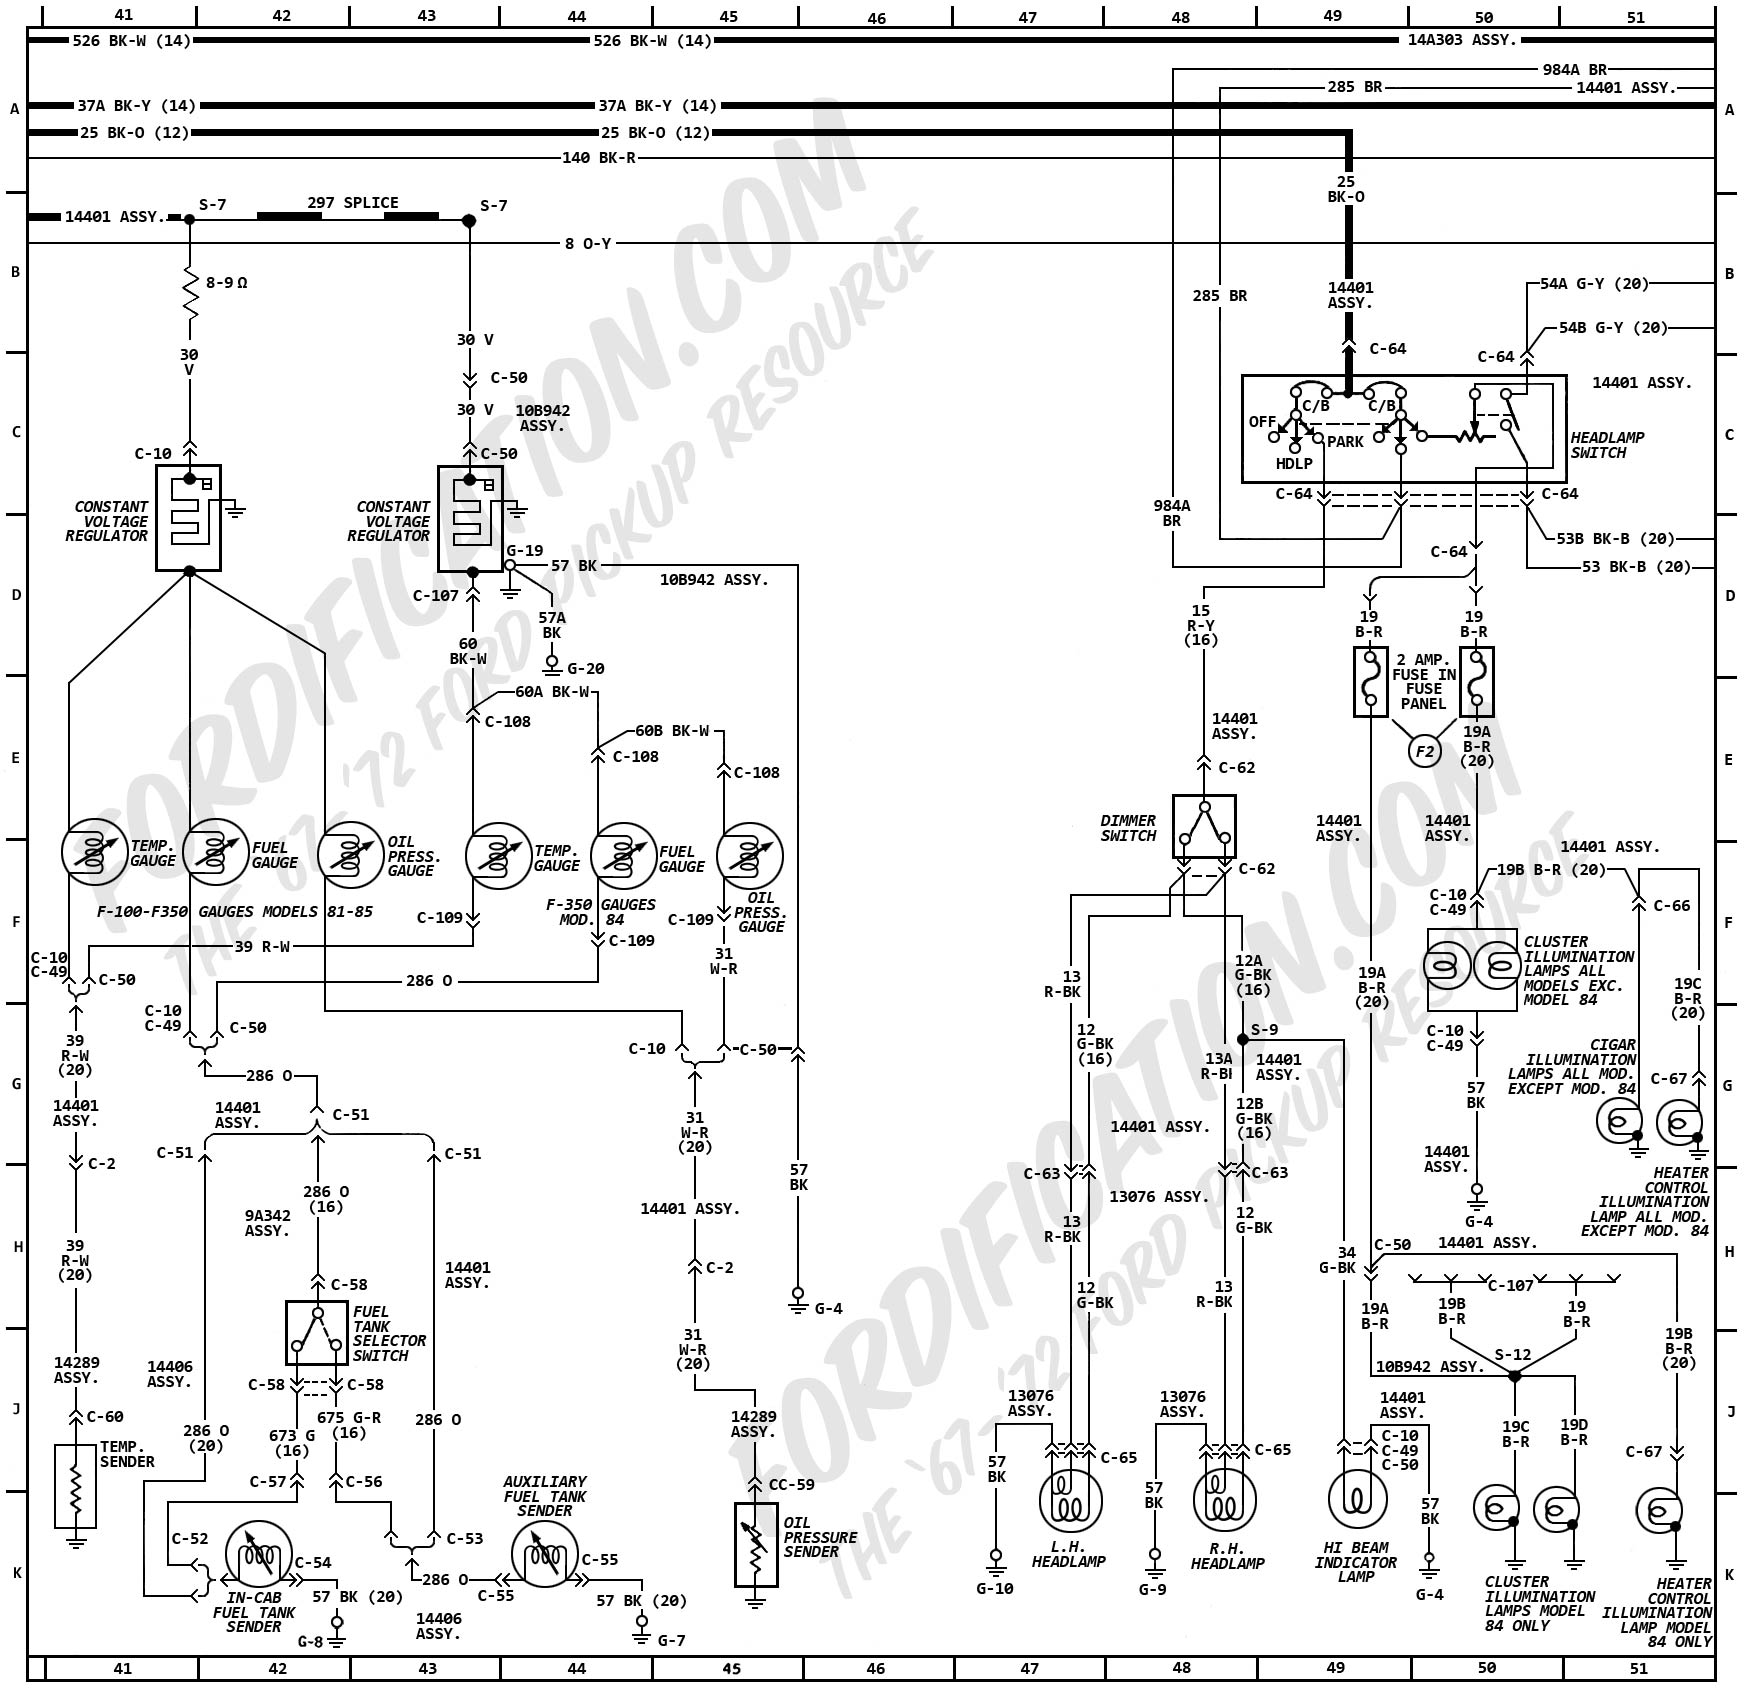 [DIAGRAM] Xd9000i Wiring Diagram FULL Version HD Quality